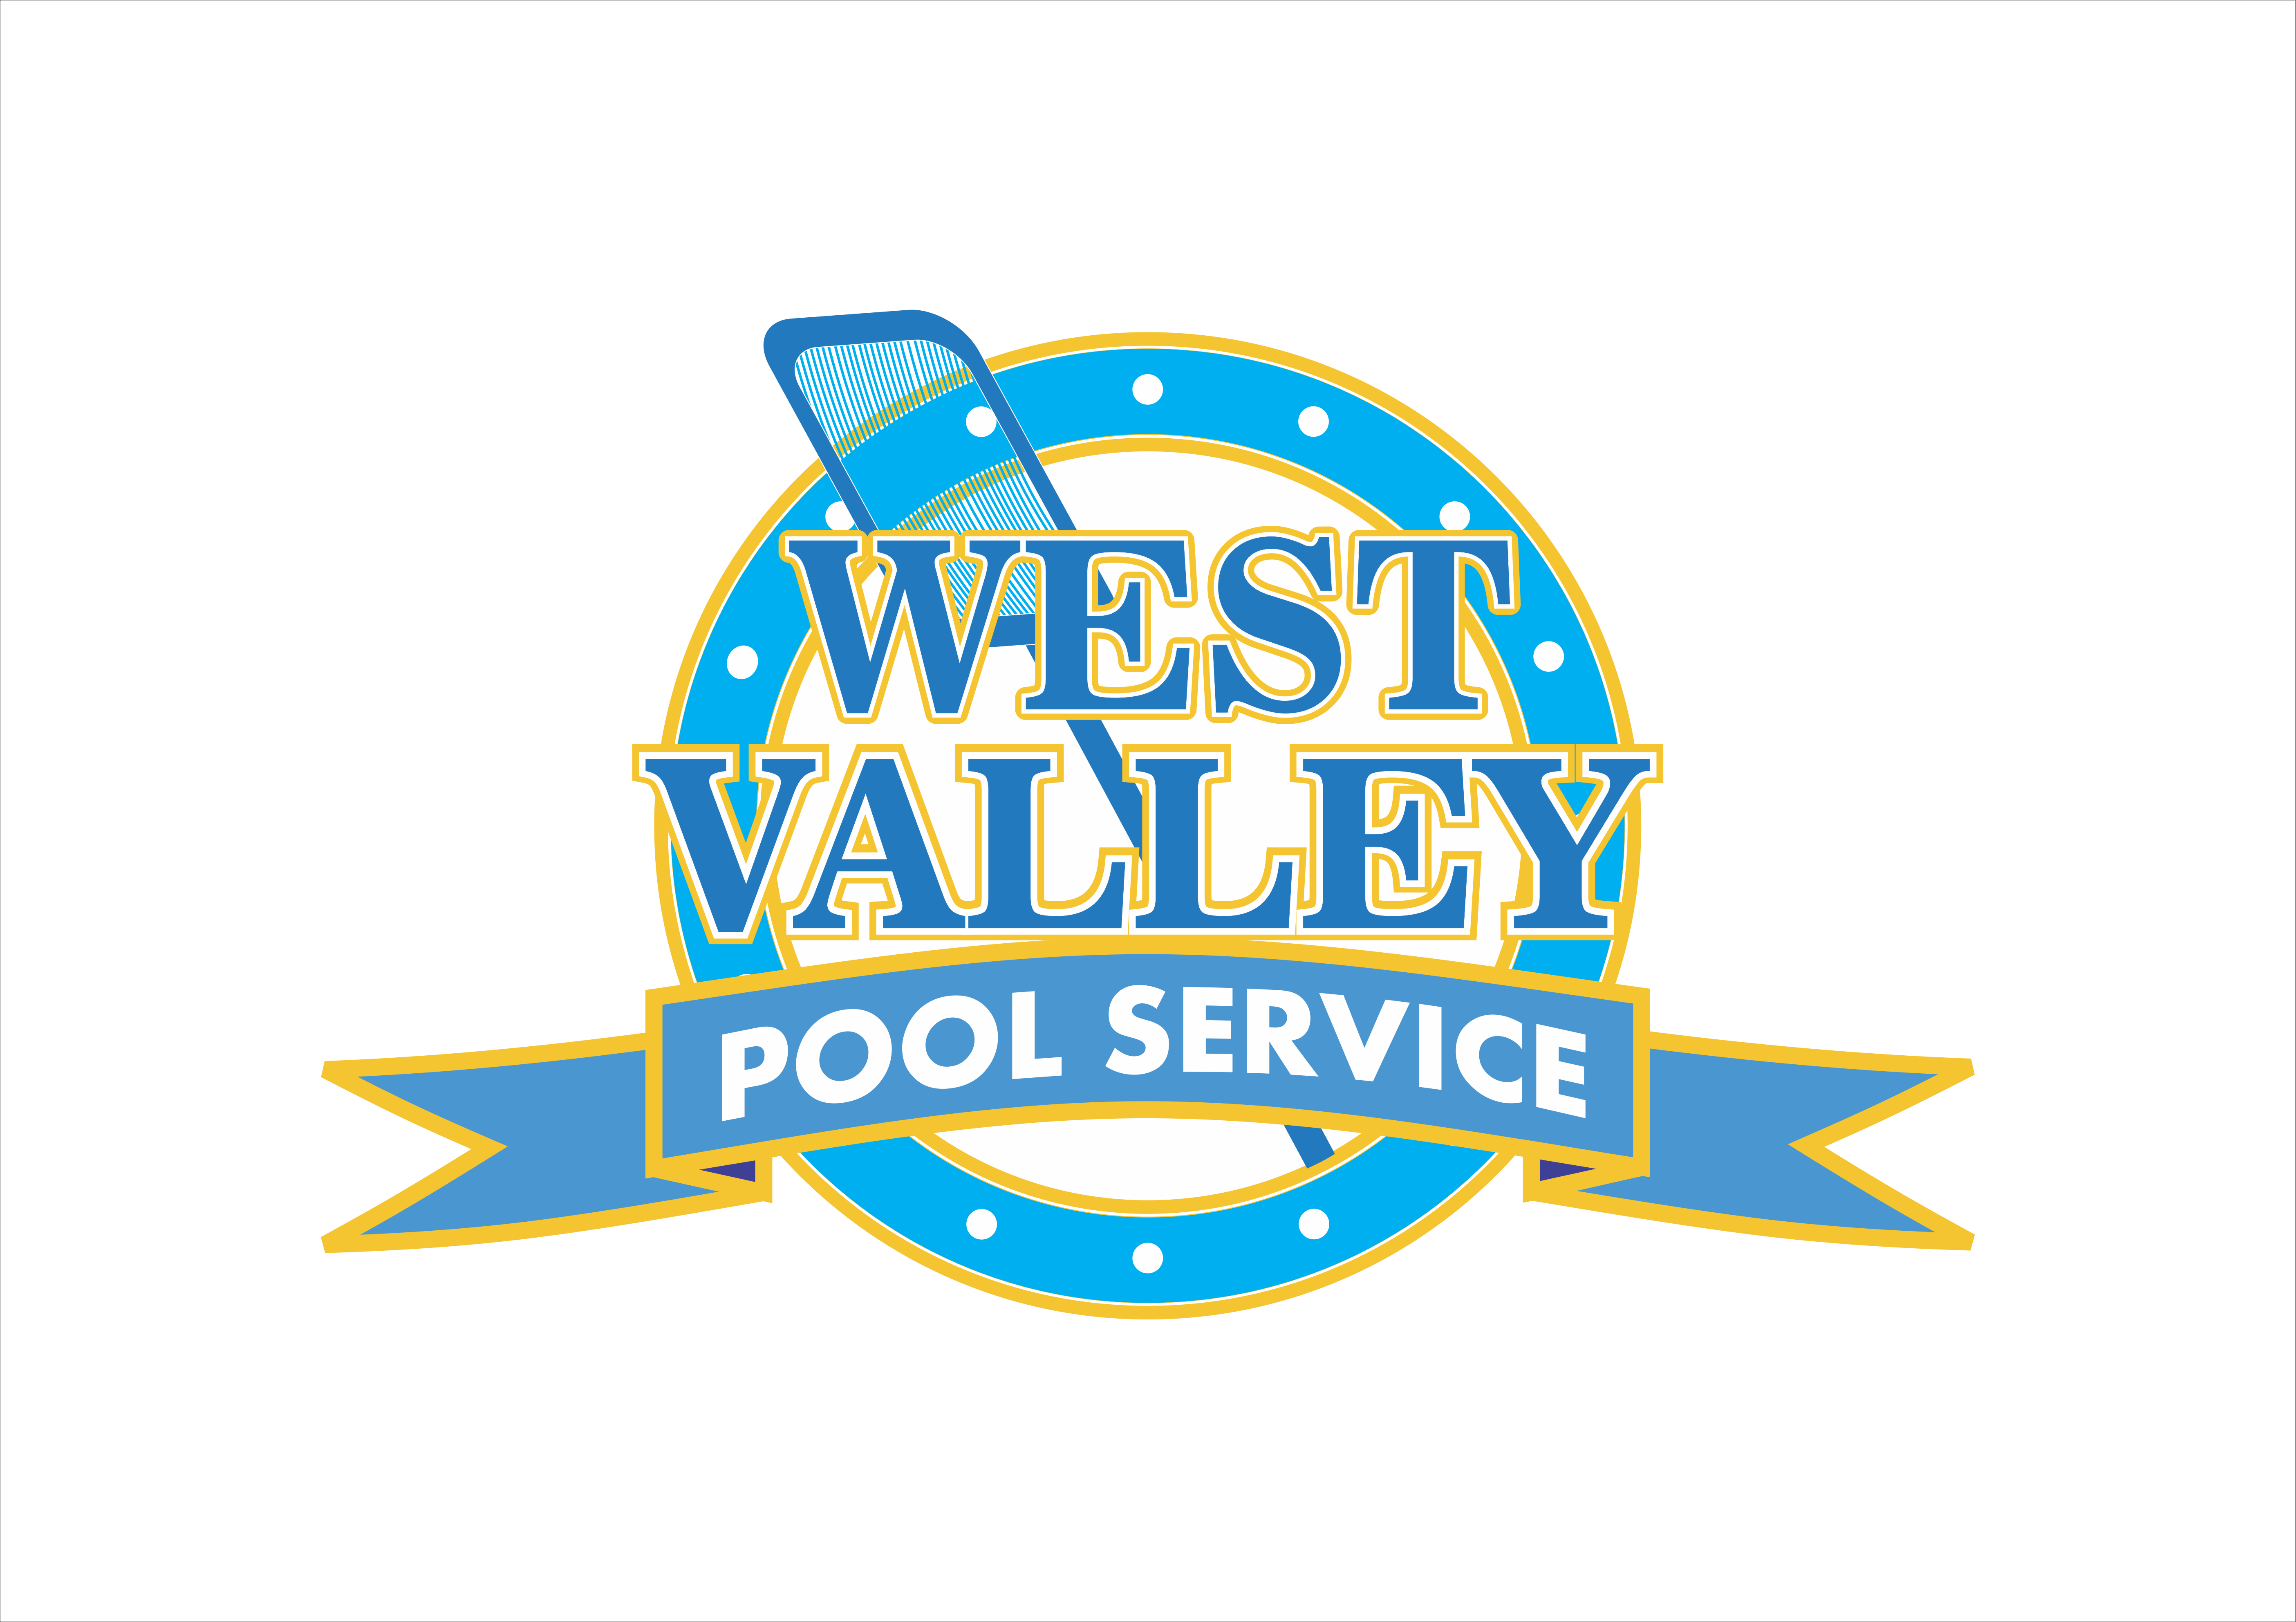 Logo Design by snow - Entry No. 60 in the Logo Design Contest Clever Logo Design for West Valley Pool Service.